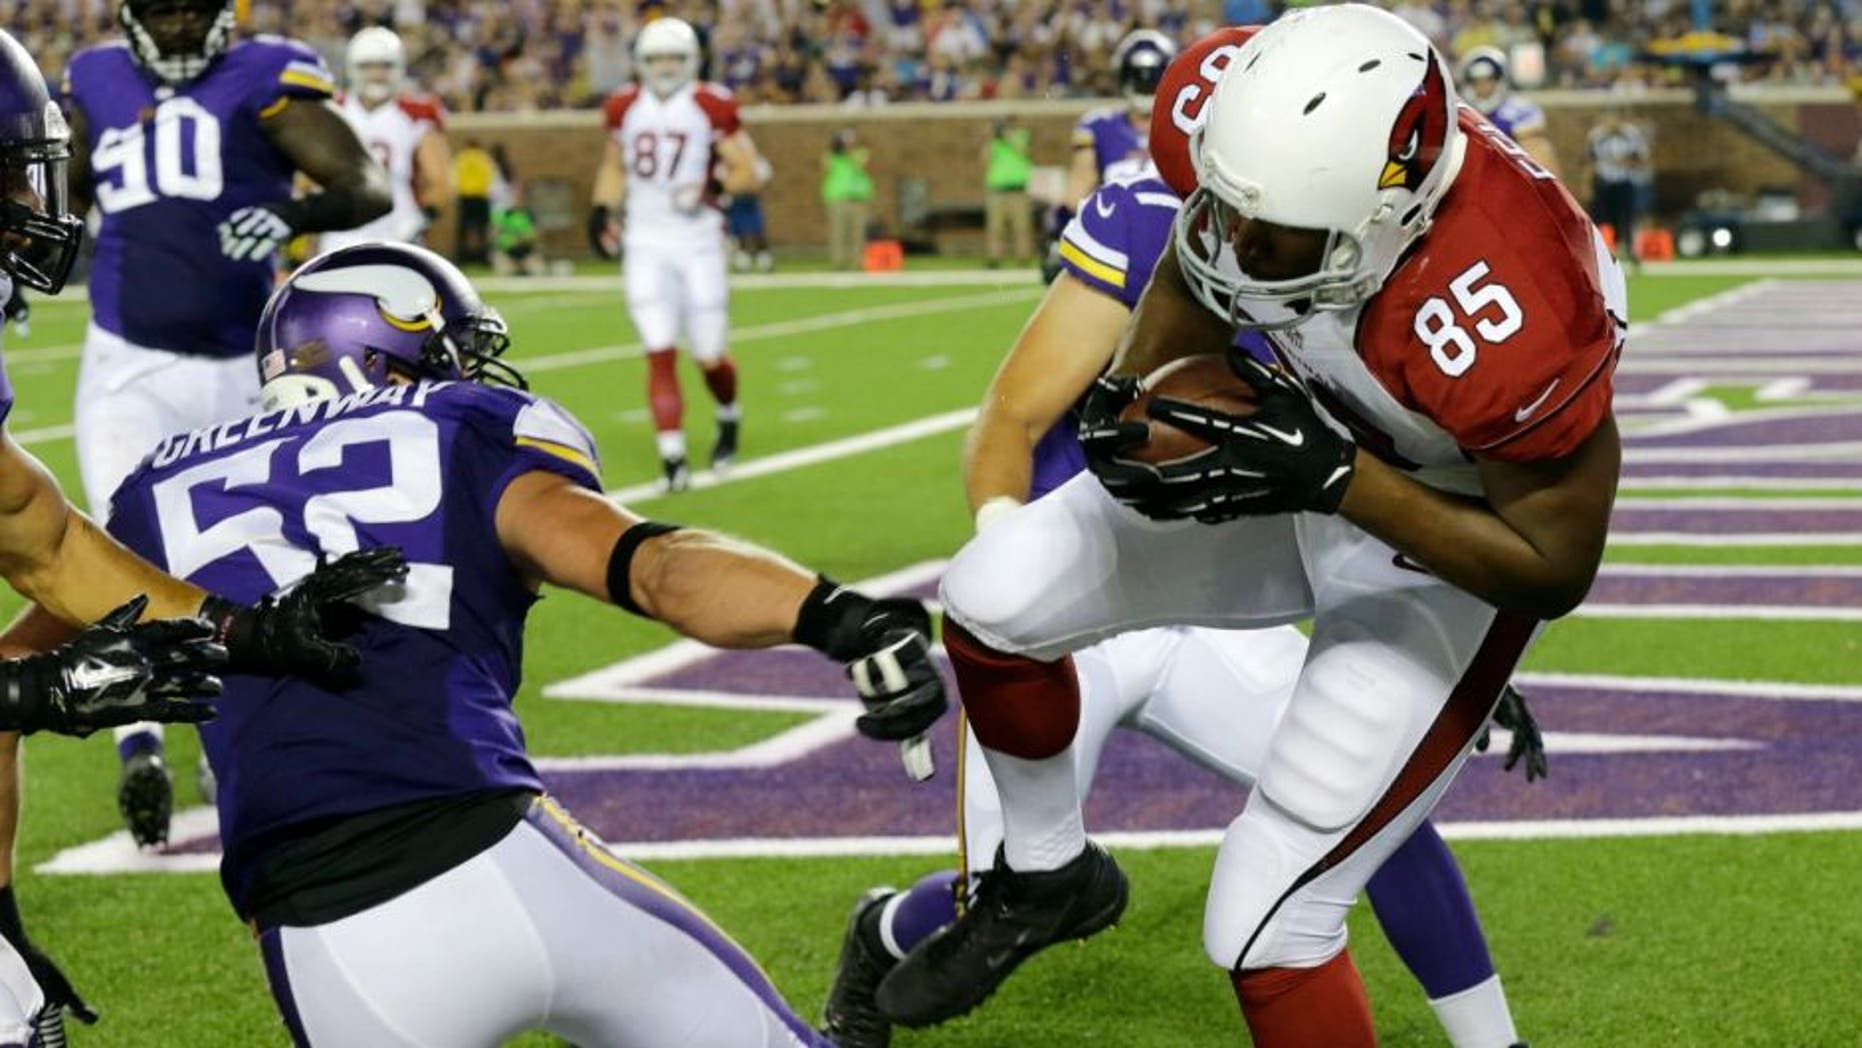 Arizona Cardinals tight end Darren Fells (85) catches a 1-yard touchdown pass in front of Minnesota Vikings outside linebacker Chad Greenway (52) during the first half of an NFL preseason football game, Saturday, Aug. 16, 2014, in Minneapolis. (AP Photo/Ann Heisenfelt)